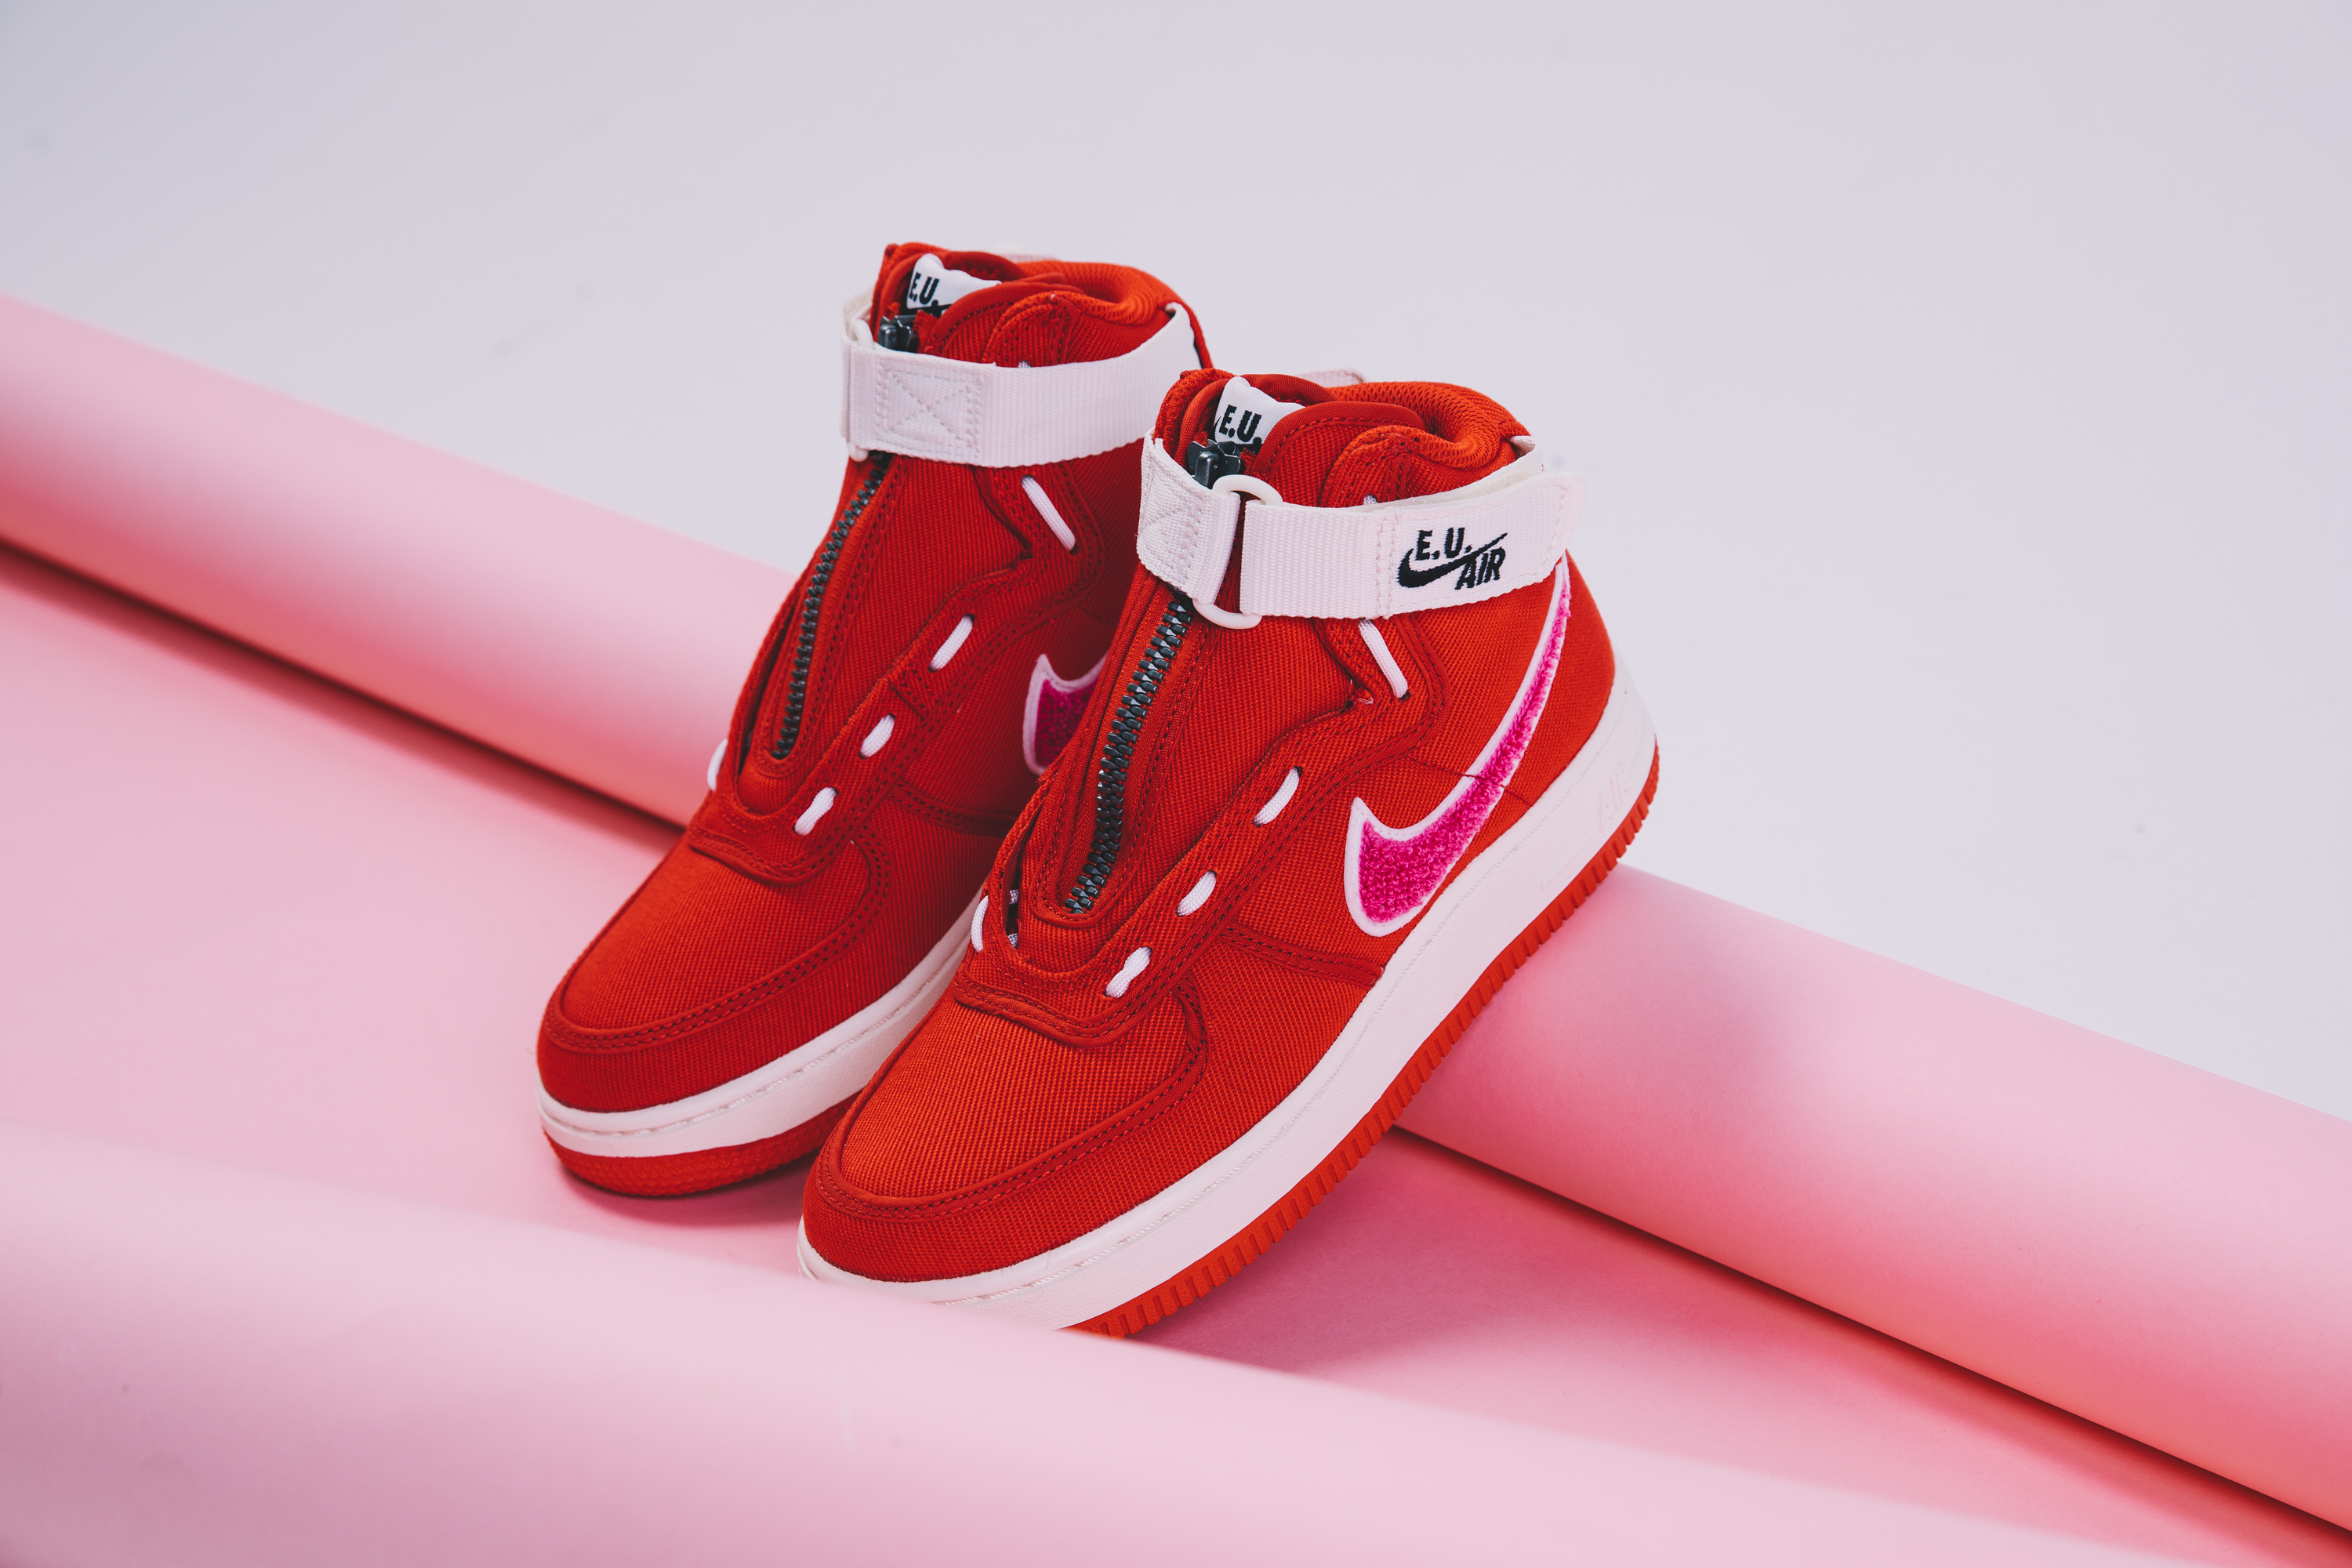 half off 2ab7e 98d5e 近赏Emotionally Unavailable x Nike 全新联名Air Force 1 High